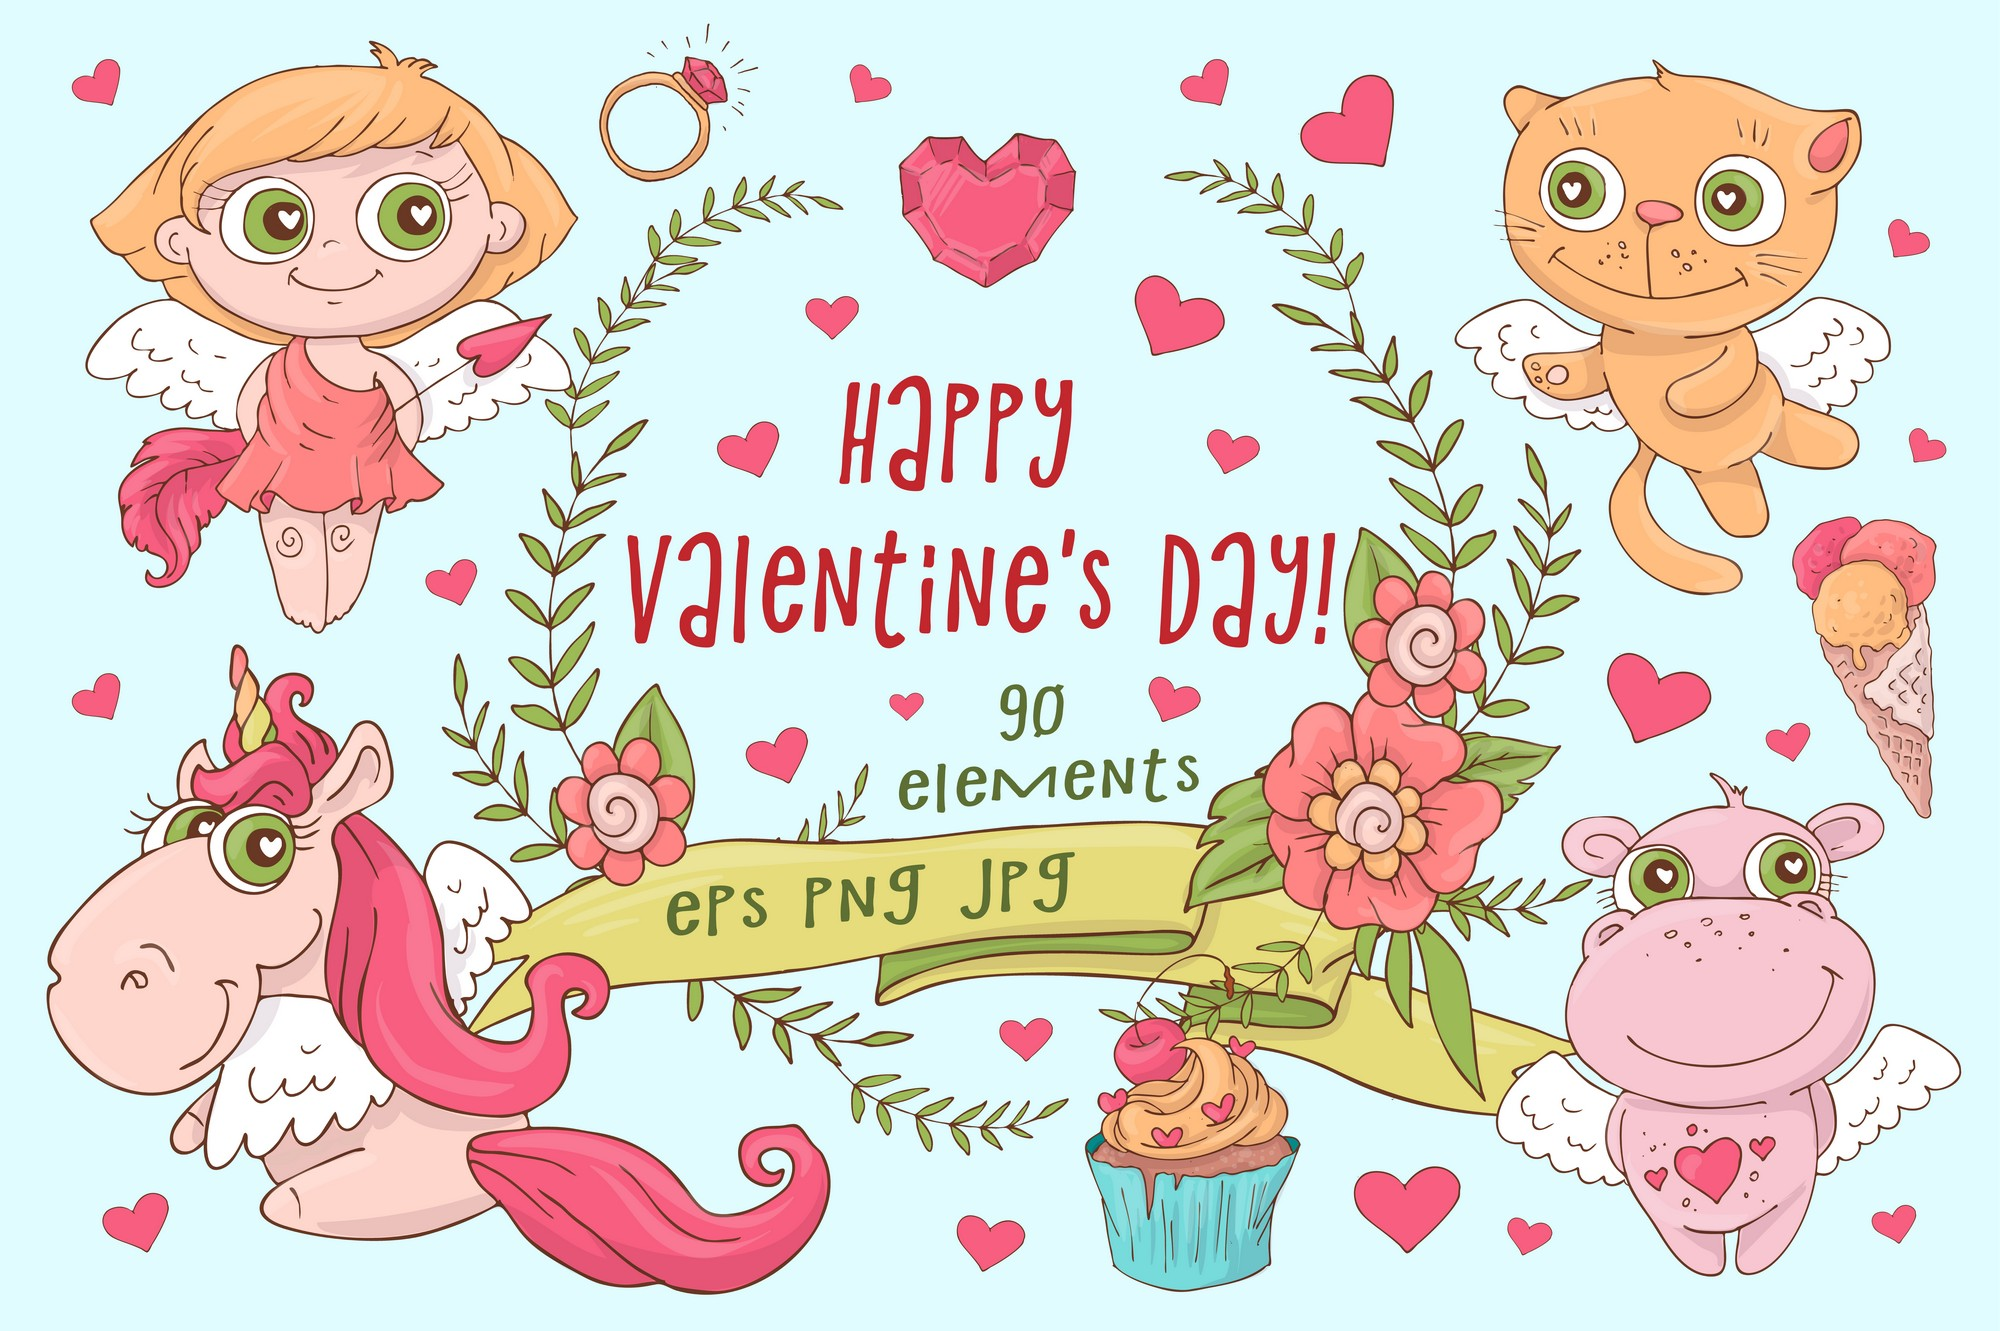 Valentine's Day clipart Collection: 90 Items - $15 - Image00001 2